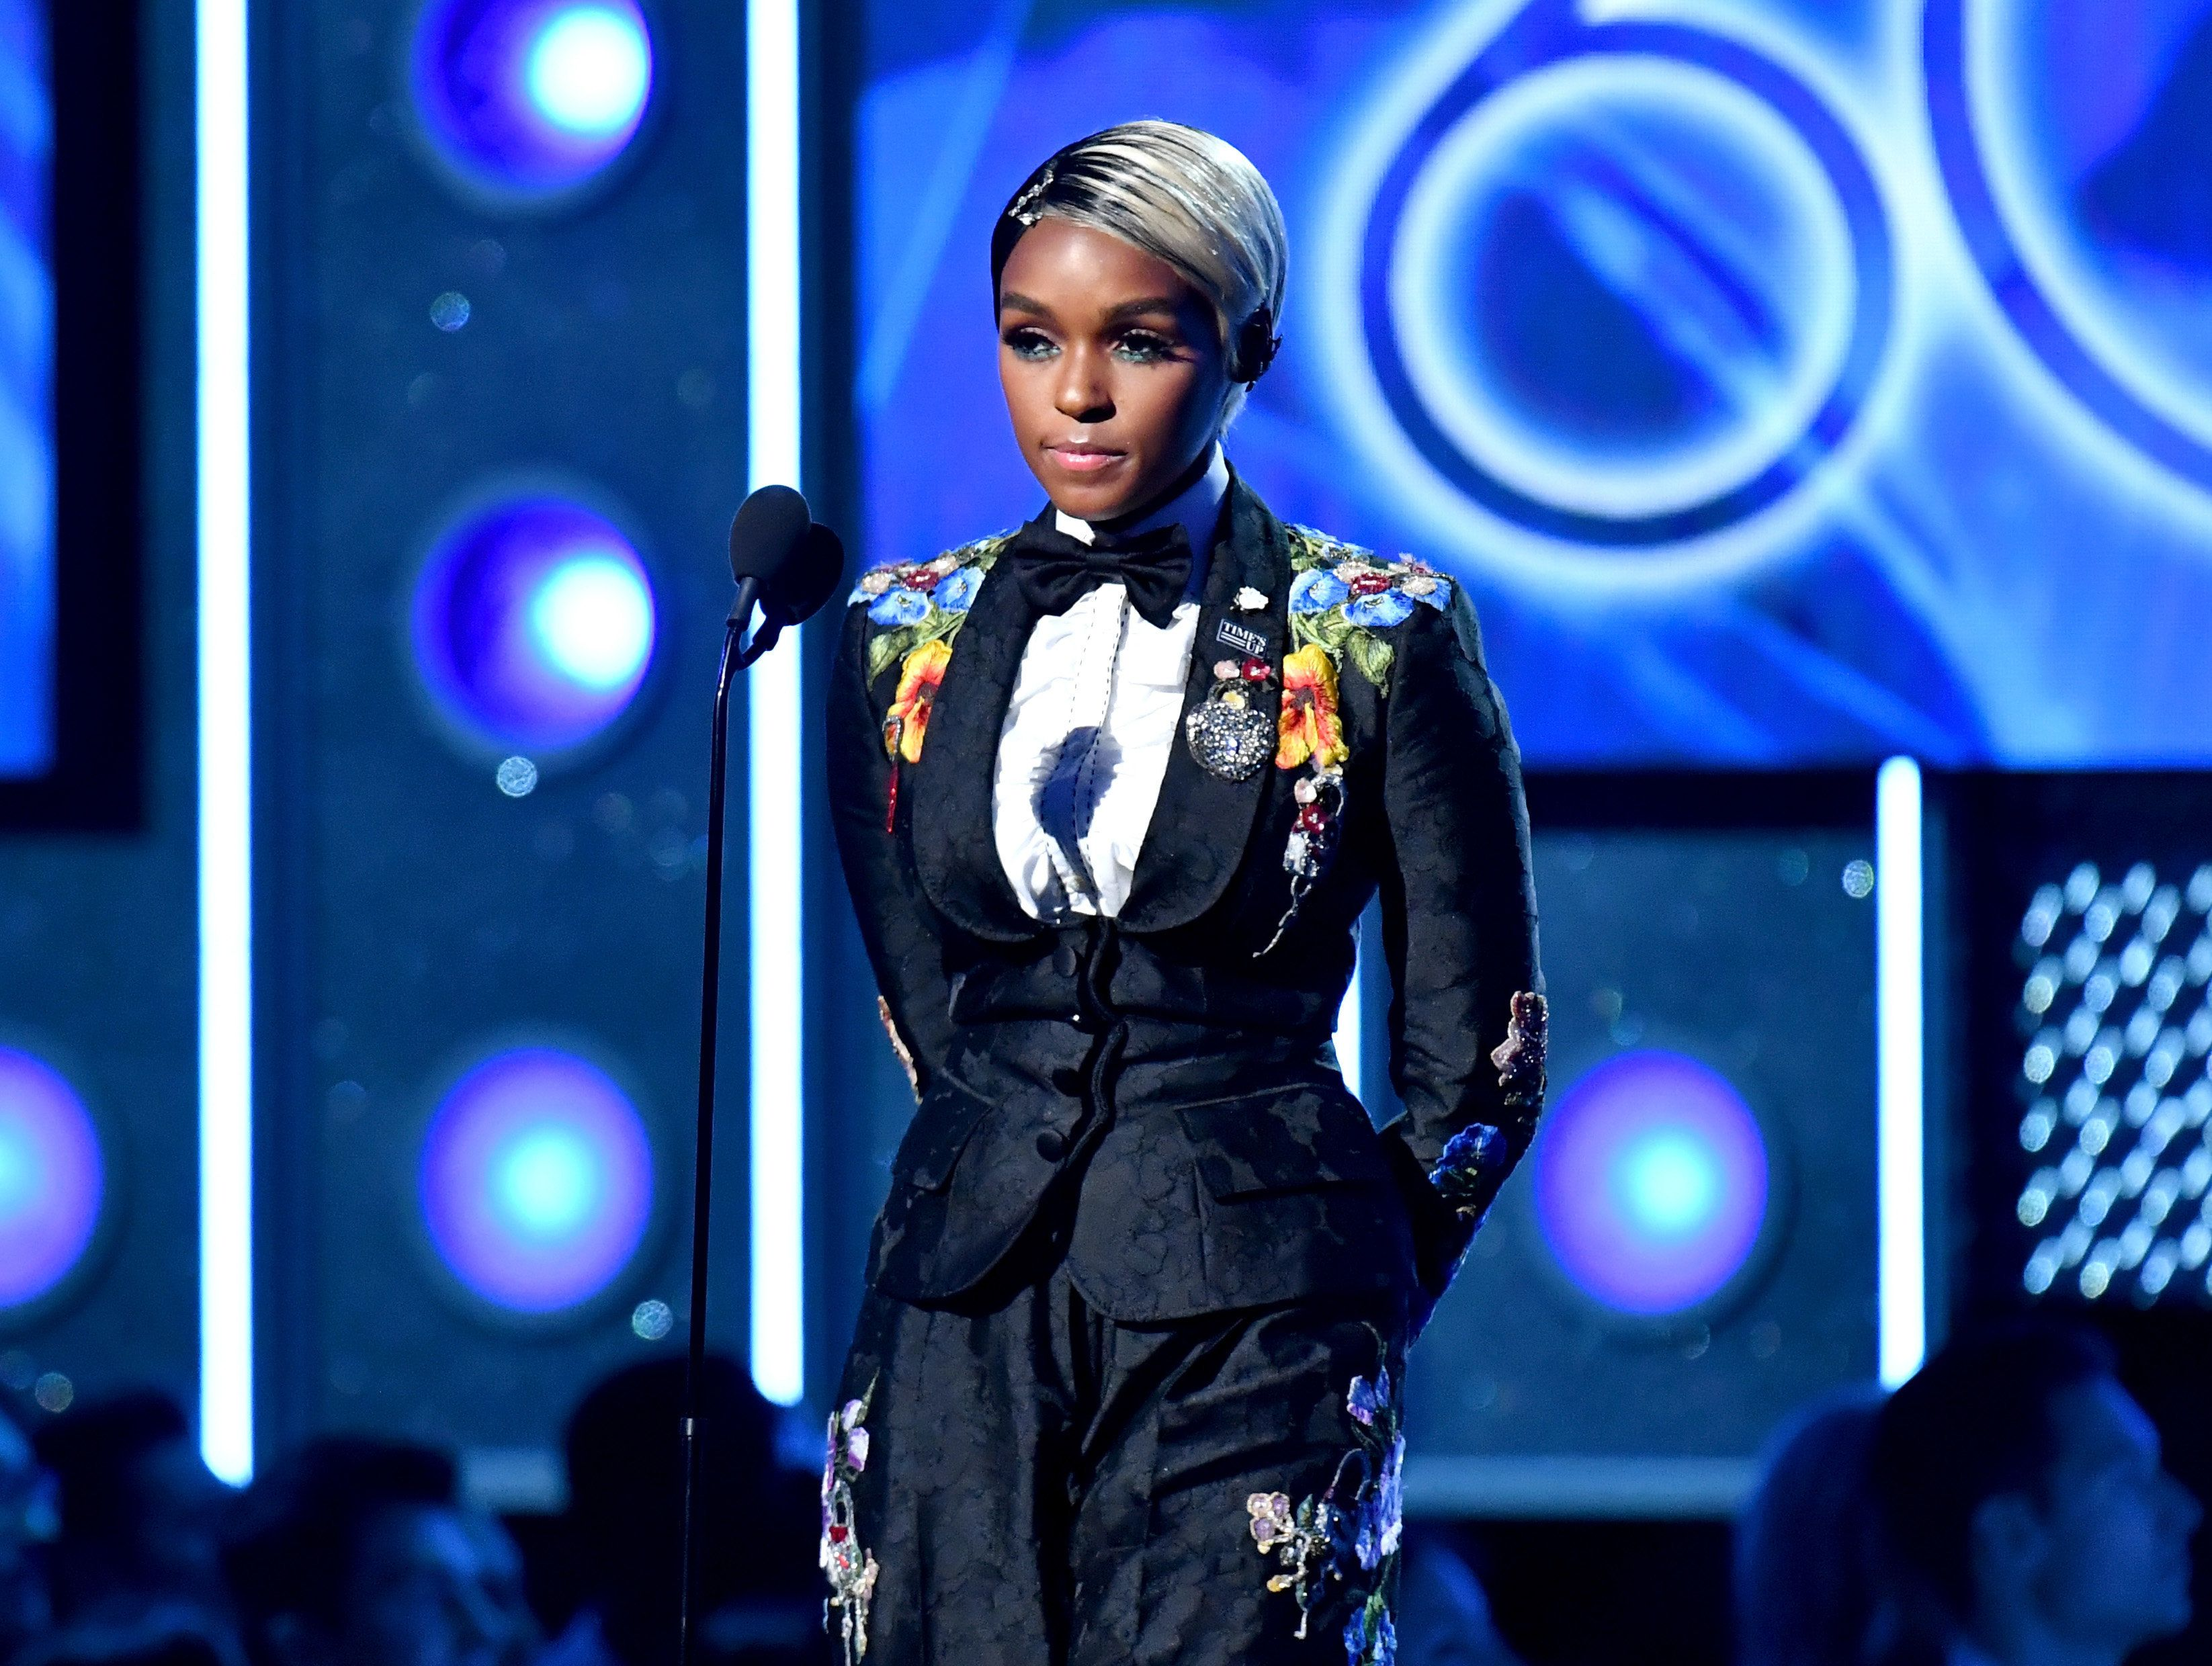 NEW YORK, NY - JANUARY 28:  Recording artist Janelle Monae speaks onstage during the 60th Annual GRAMMY Awards at Madison Square Garden on January 28, 2018 in New York City.  (Photo by Jeff Kravitz/FilmMagic)